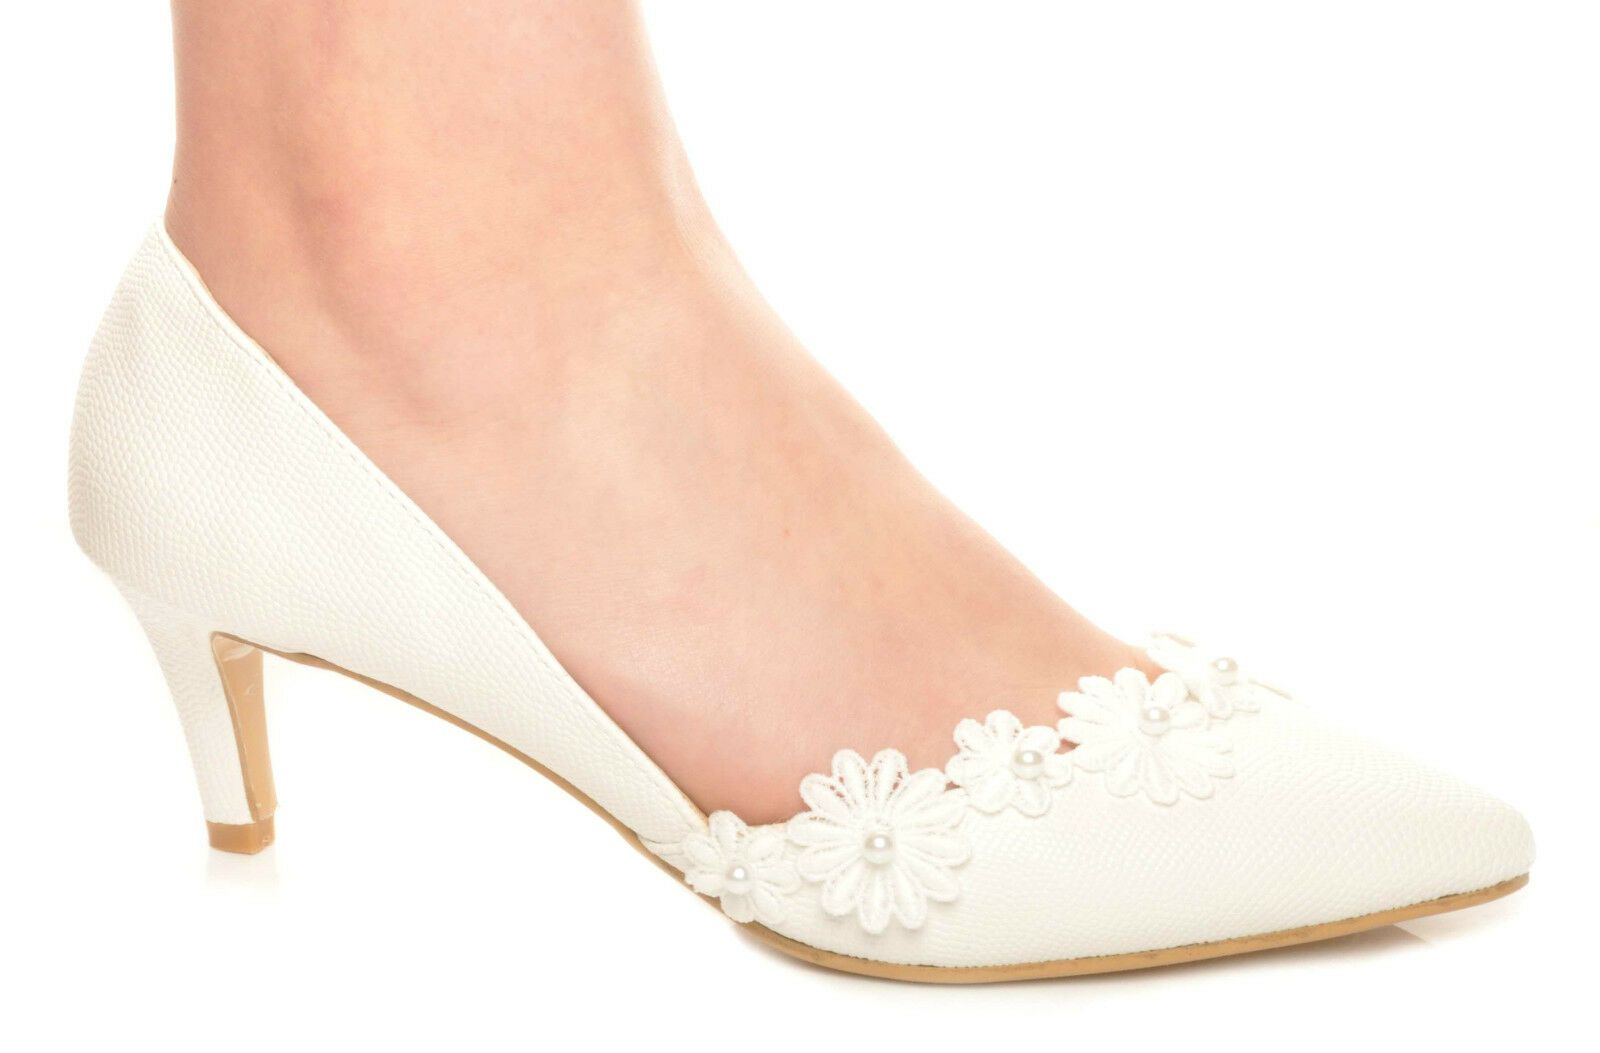 Off White Flower Pointed Toe Textured Cut-Out Side Wedding Kitten Heels